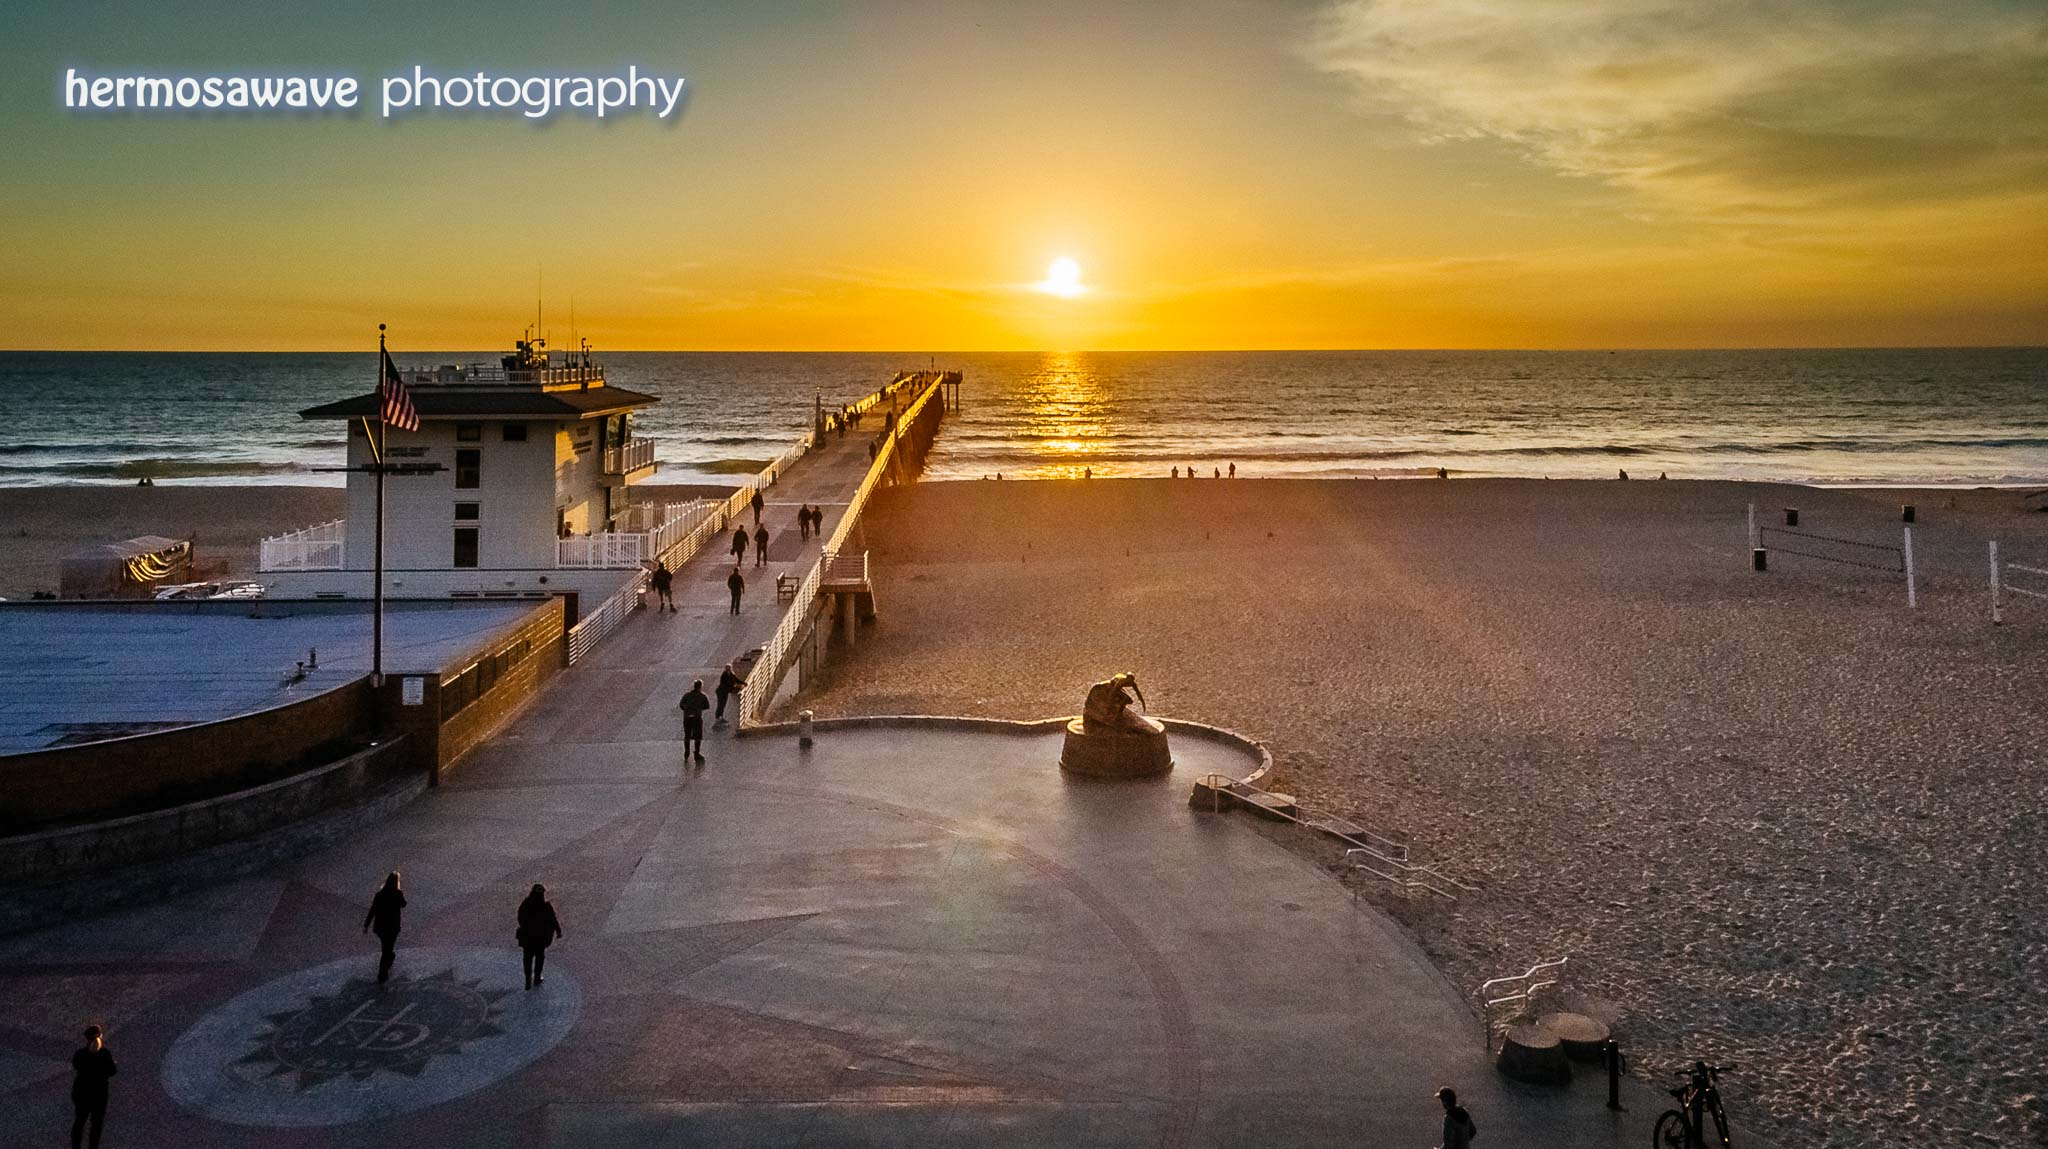 Sunset Above the Hermosa Pier